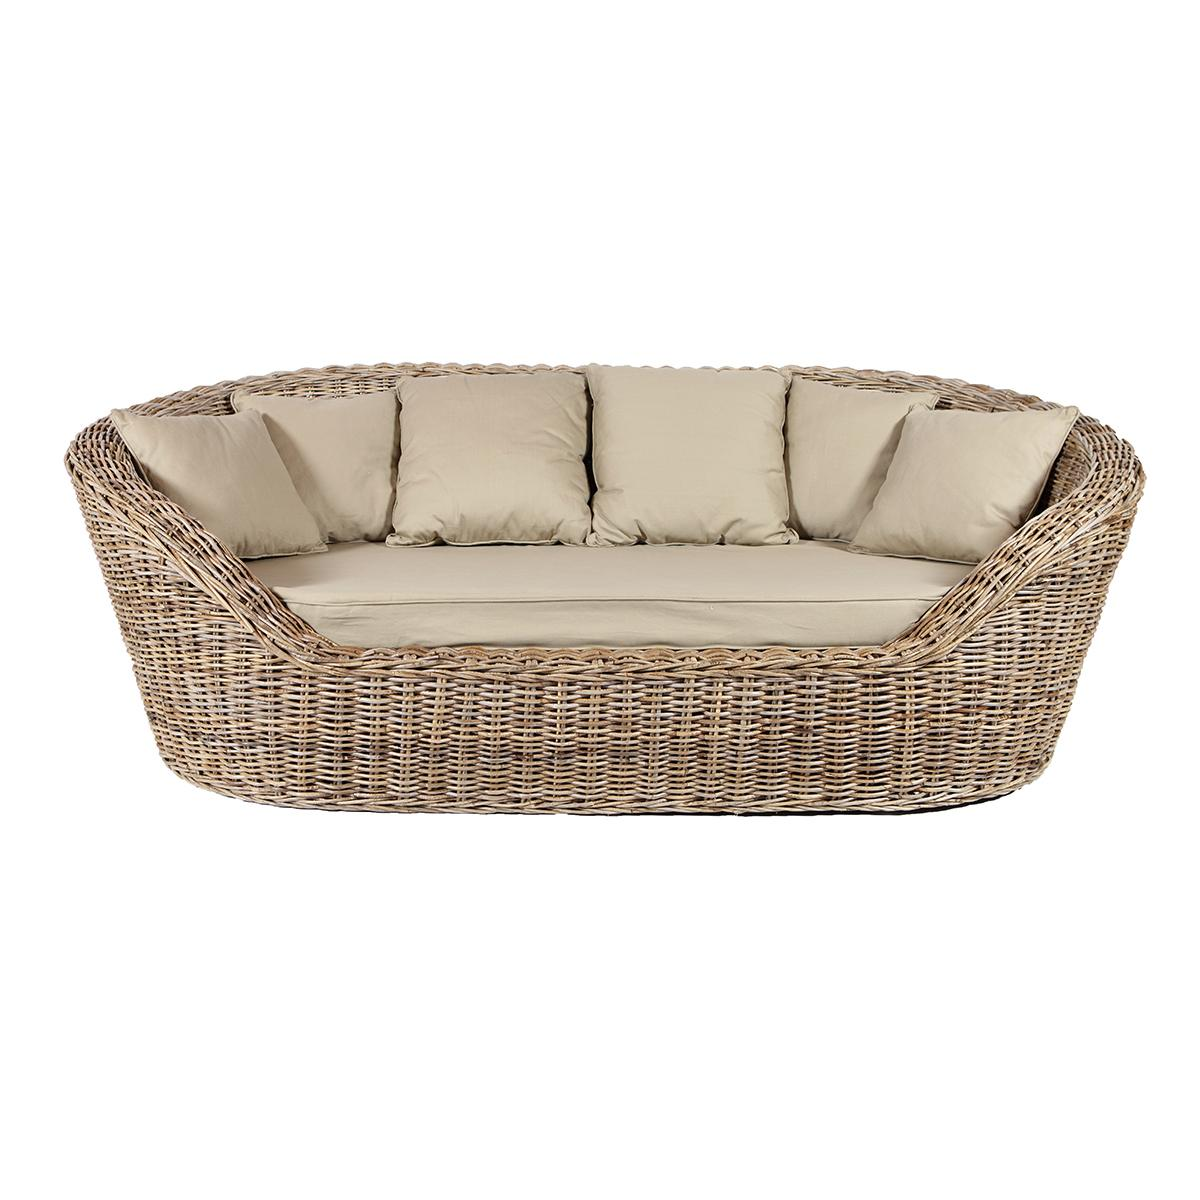 Full Size of Rattan Sofa Corner Cover Argos Furniture Table And Chairs Set Cushions With Storage Cushion Covers Vintage For Sale Bed Aldi Singapore Joo Chiat Outdoor Uk Sofa Rattan Sofa